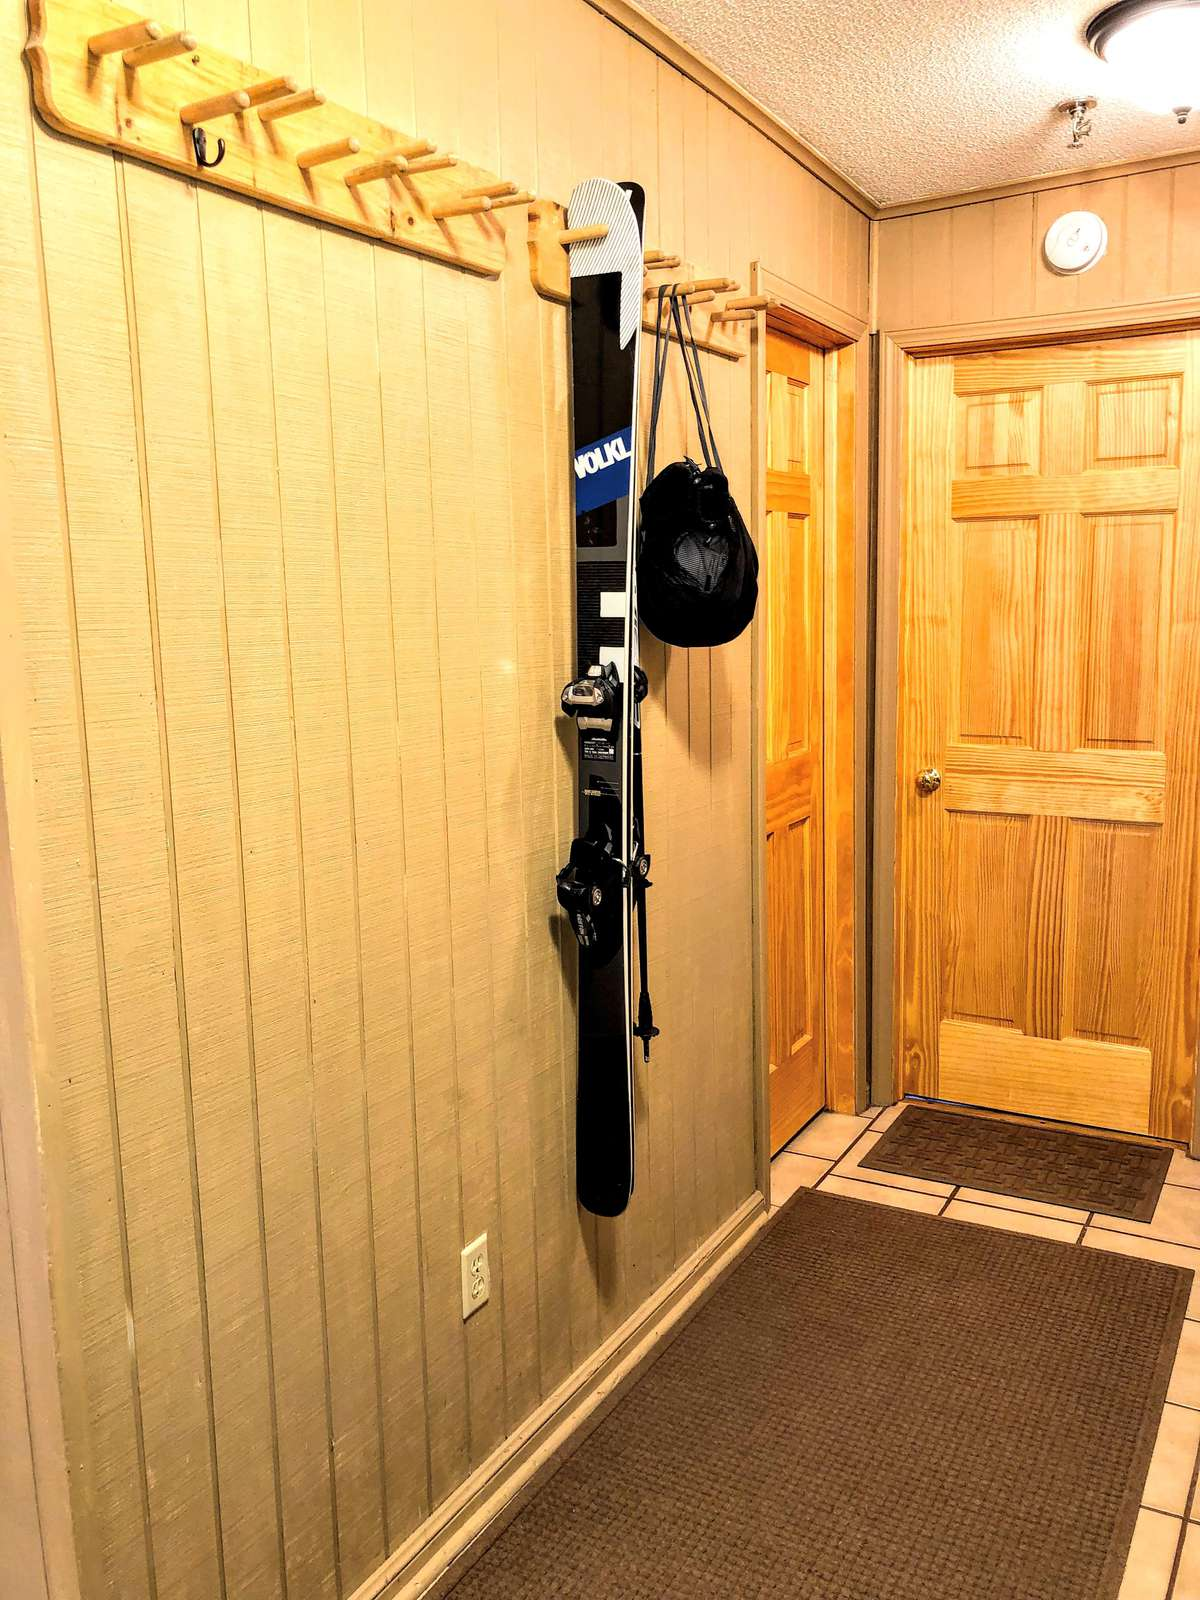 Safely store your skis/boards inside of Leatherbark 108B - on our handy-dandy ski rack!